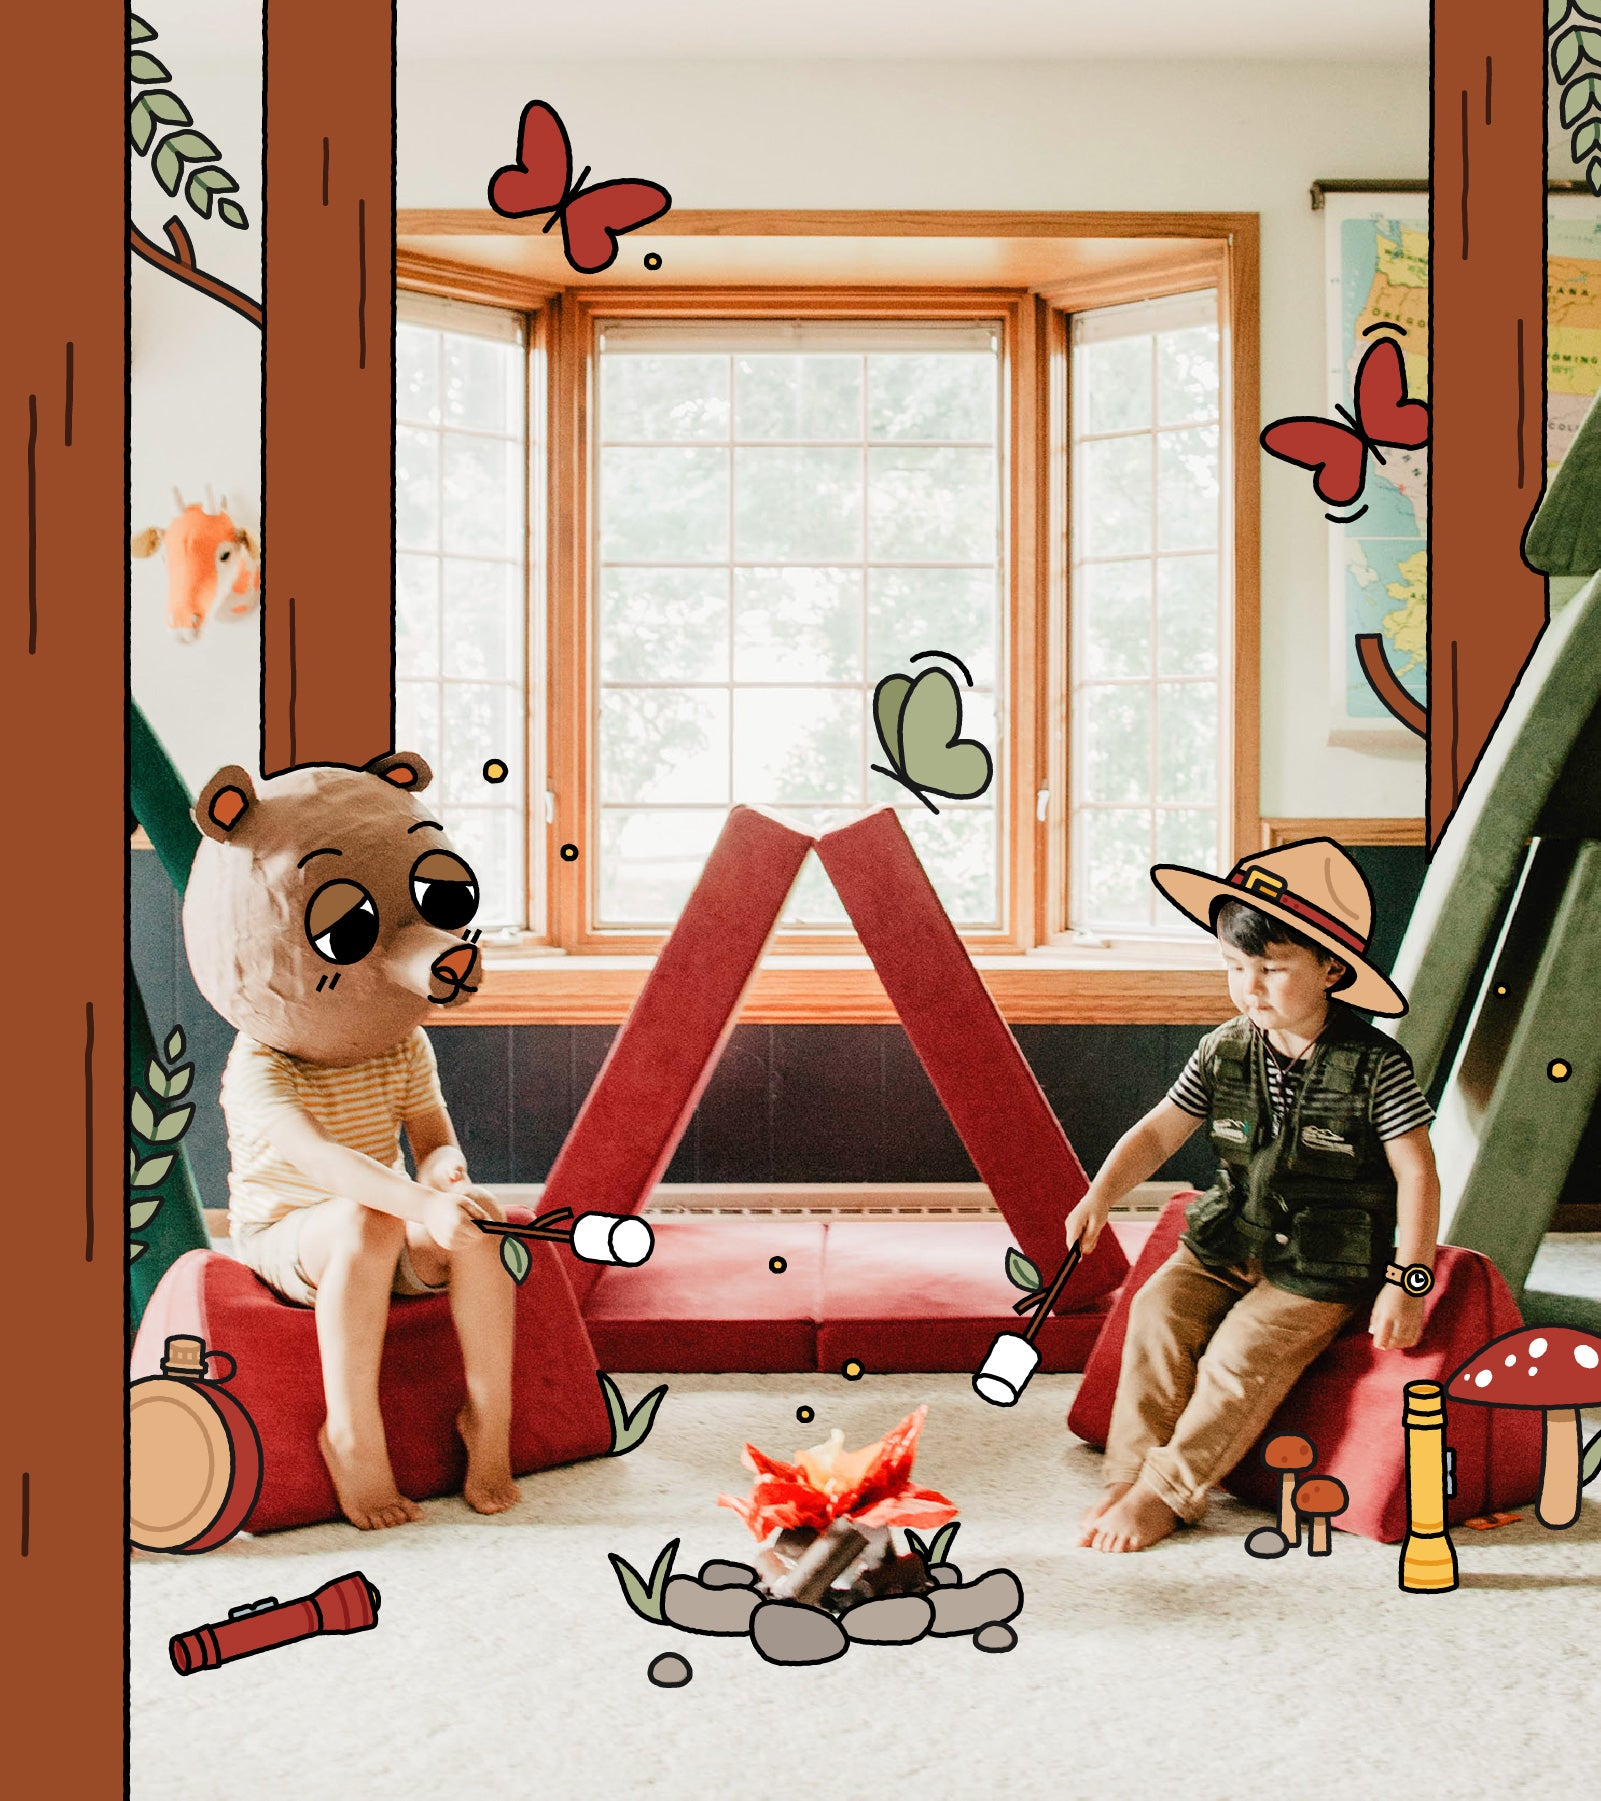 Two kids sitting around illustrated campfire, one dressed as park ranger, one with a bear costume on their head. Redwood and Bamboo Nuggets set up in background as play tents.